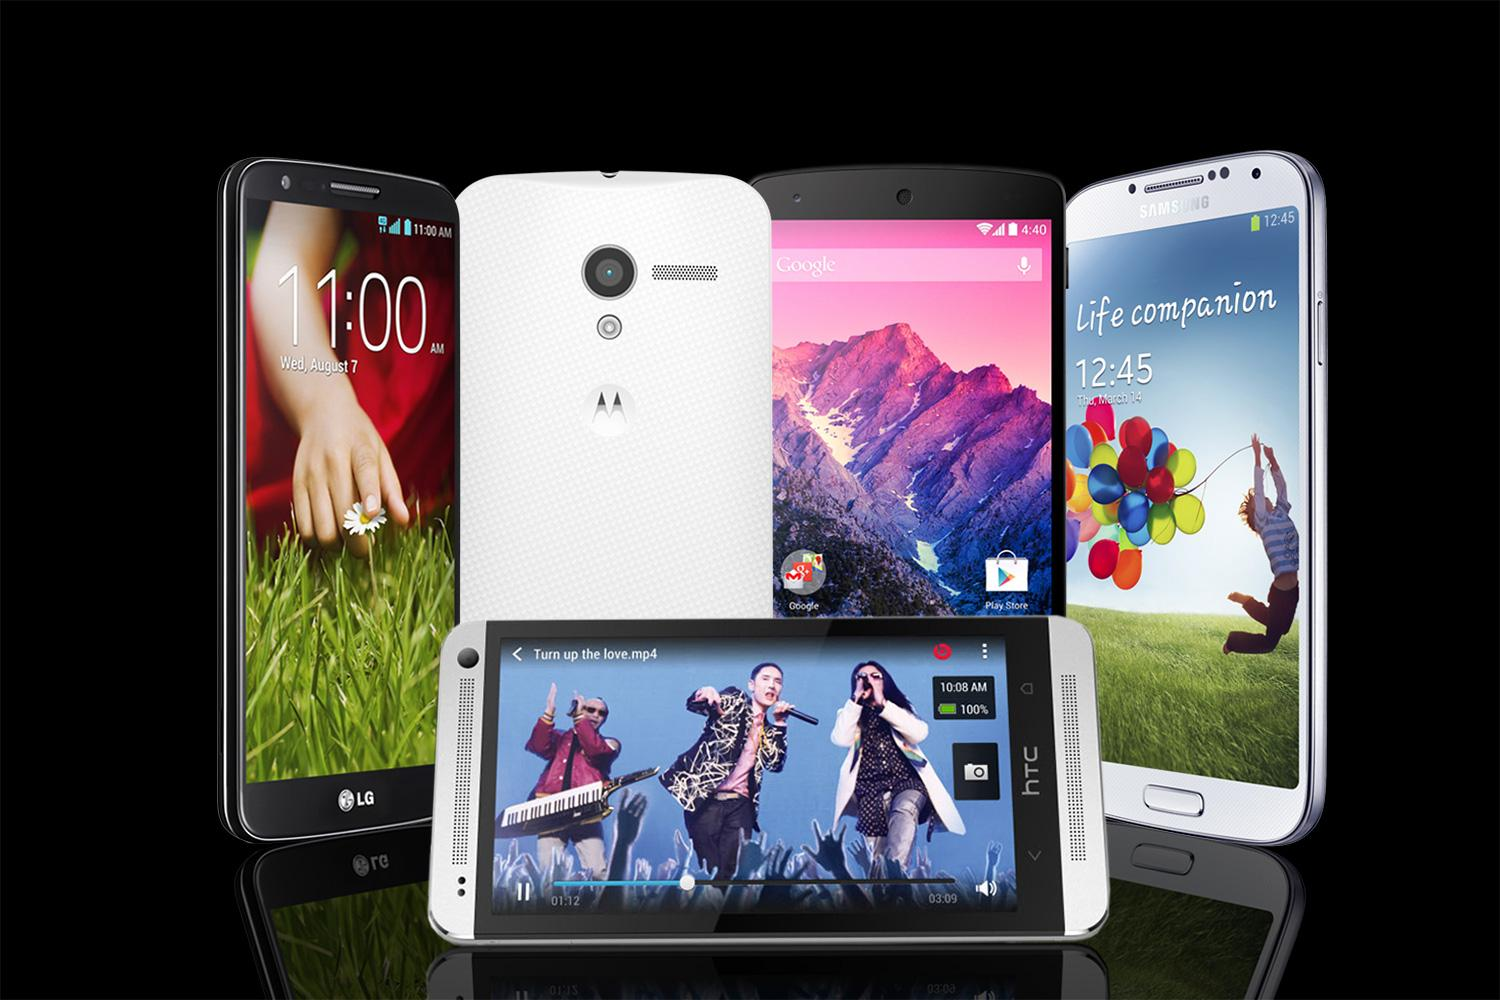 The 5 hottest Android phones of 2013 square off in our side-by-side spec comparison